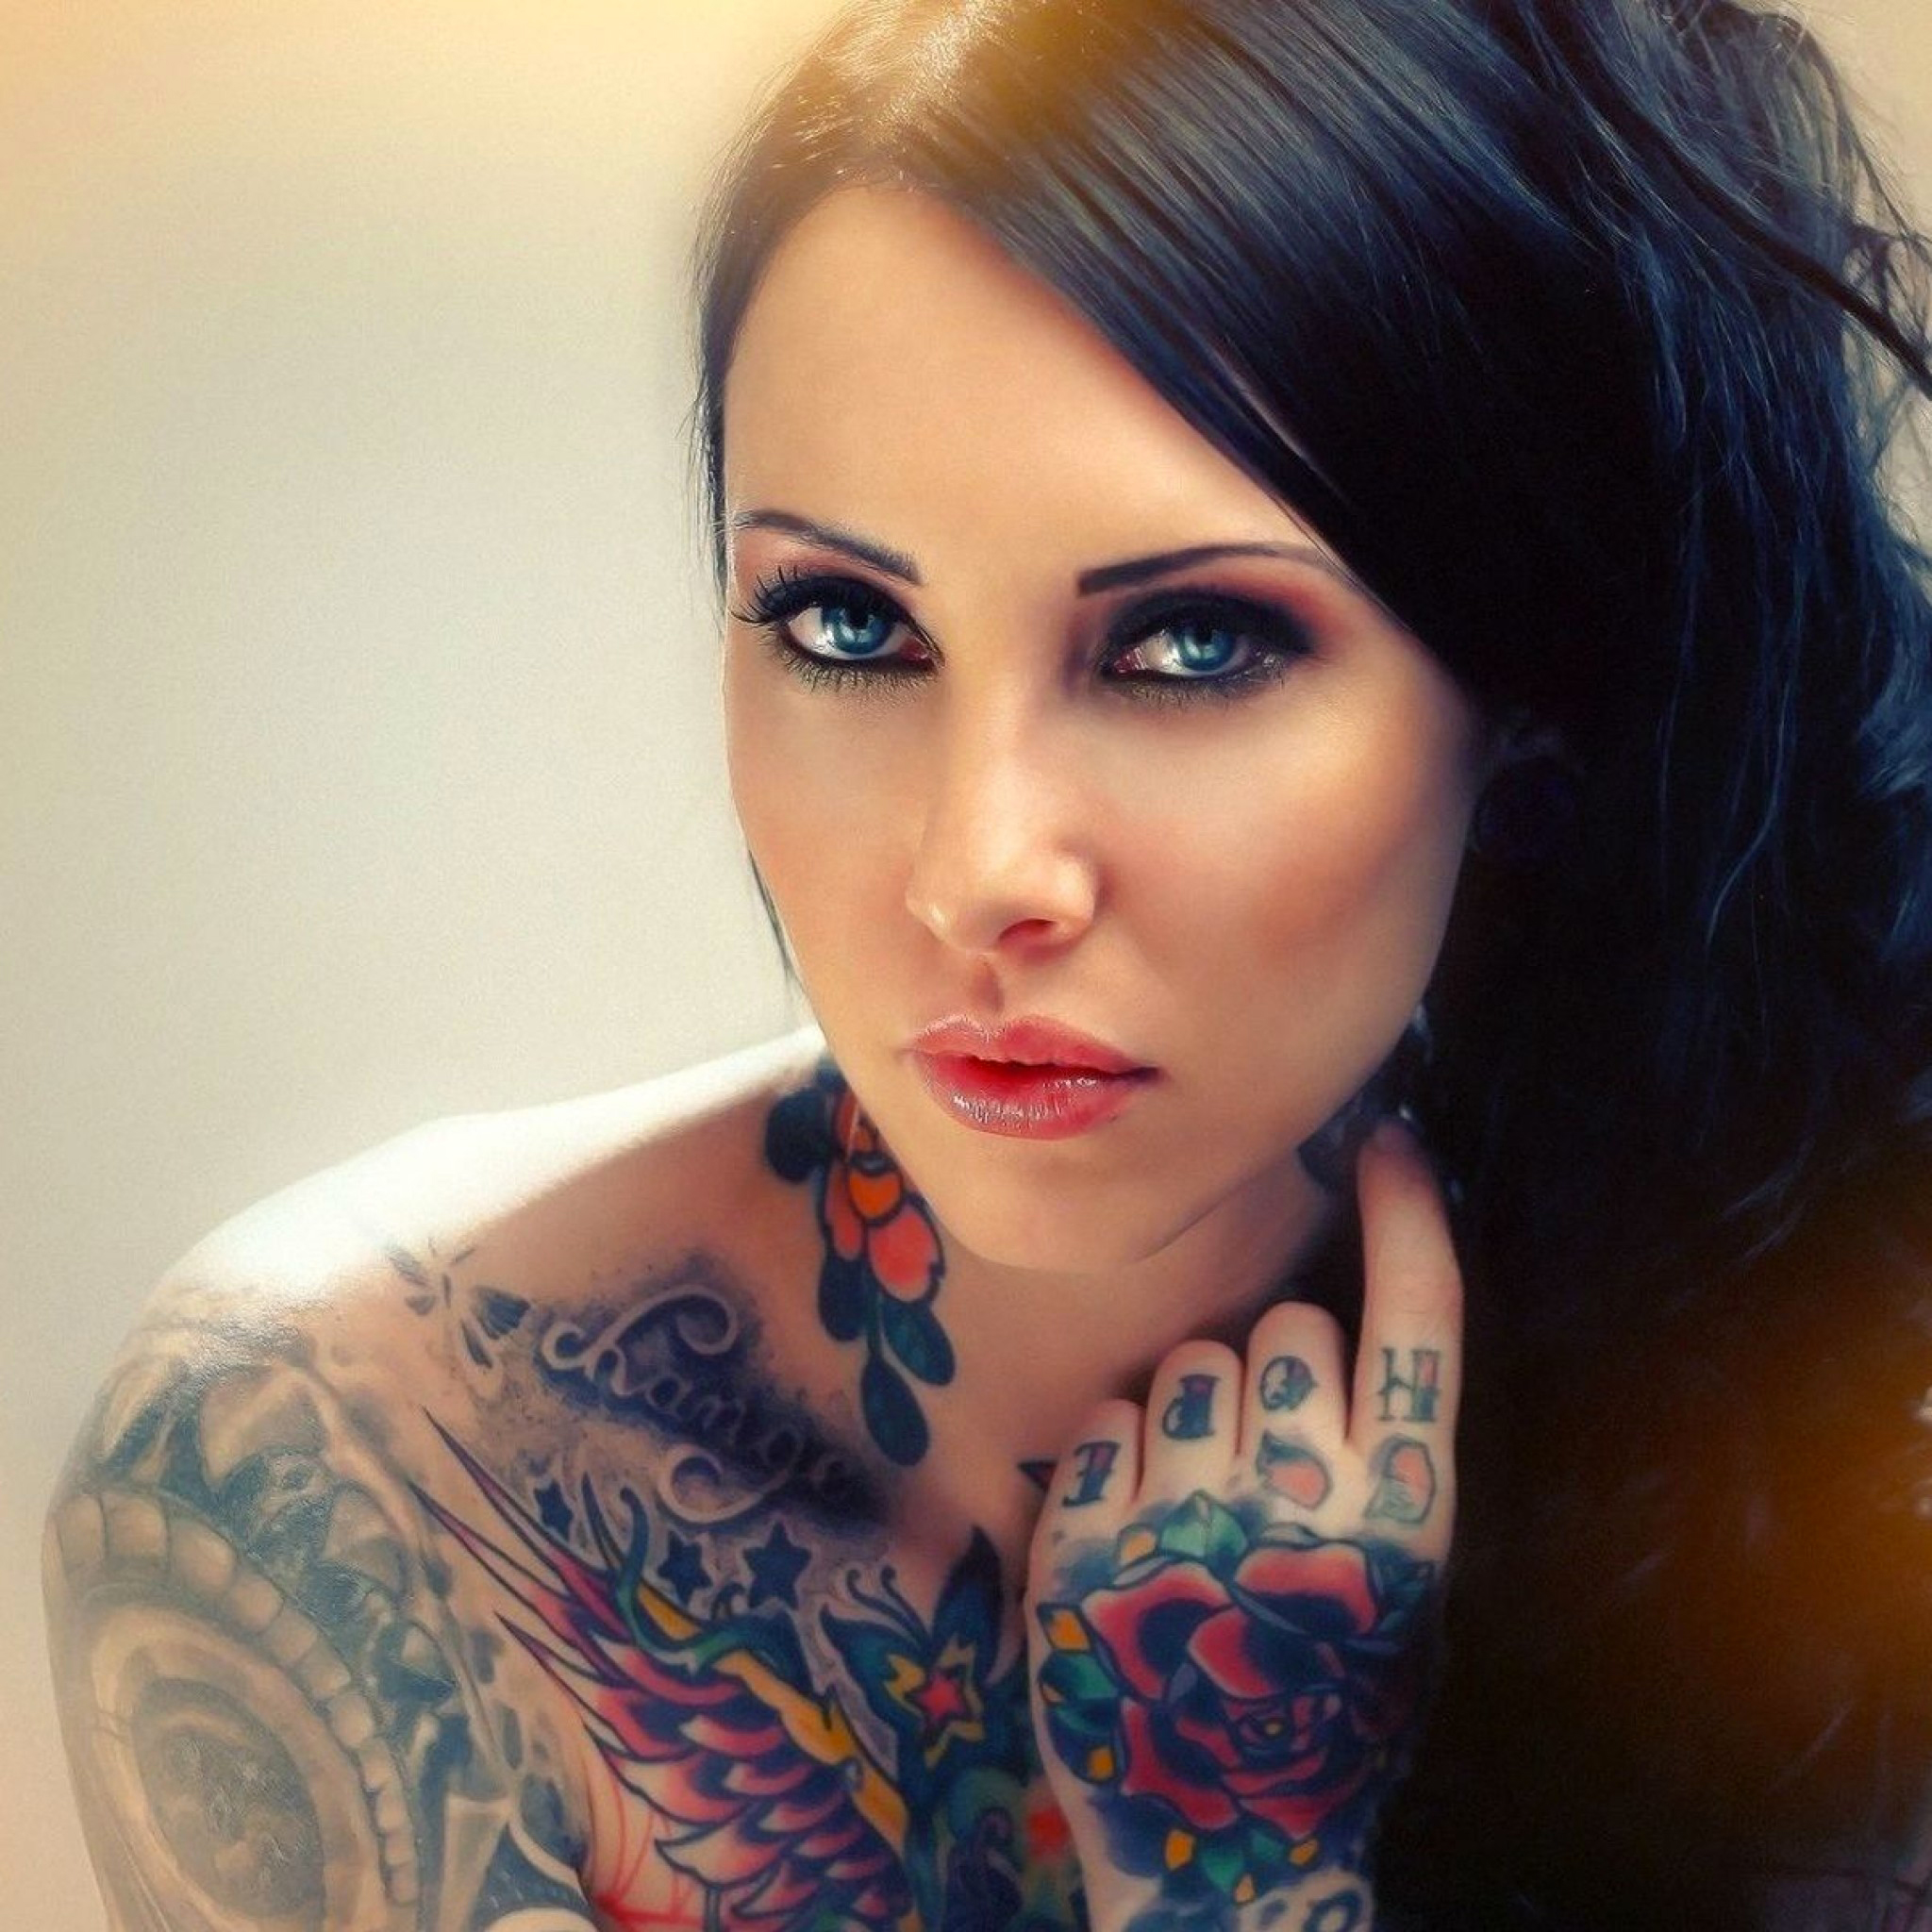 Tattoos Girl 3Wallpapers iPad Tattoos Girl   iPad